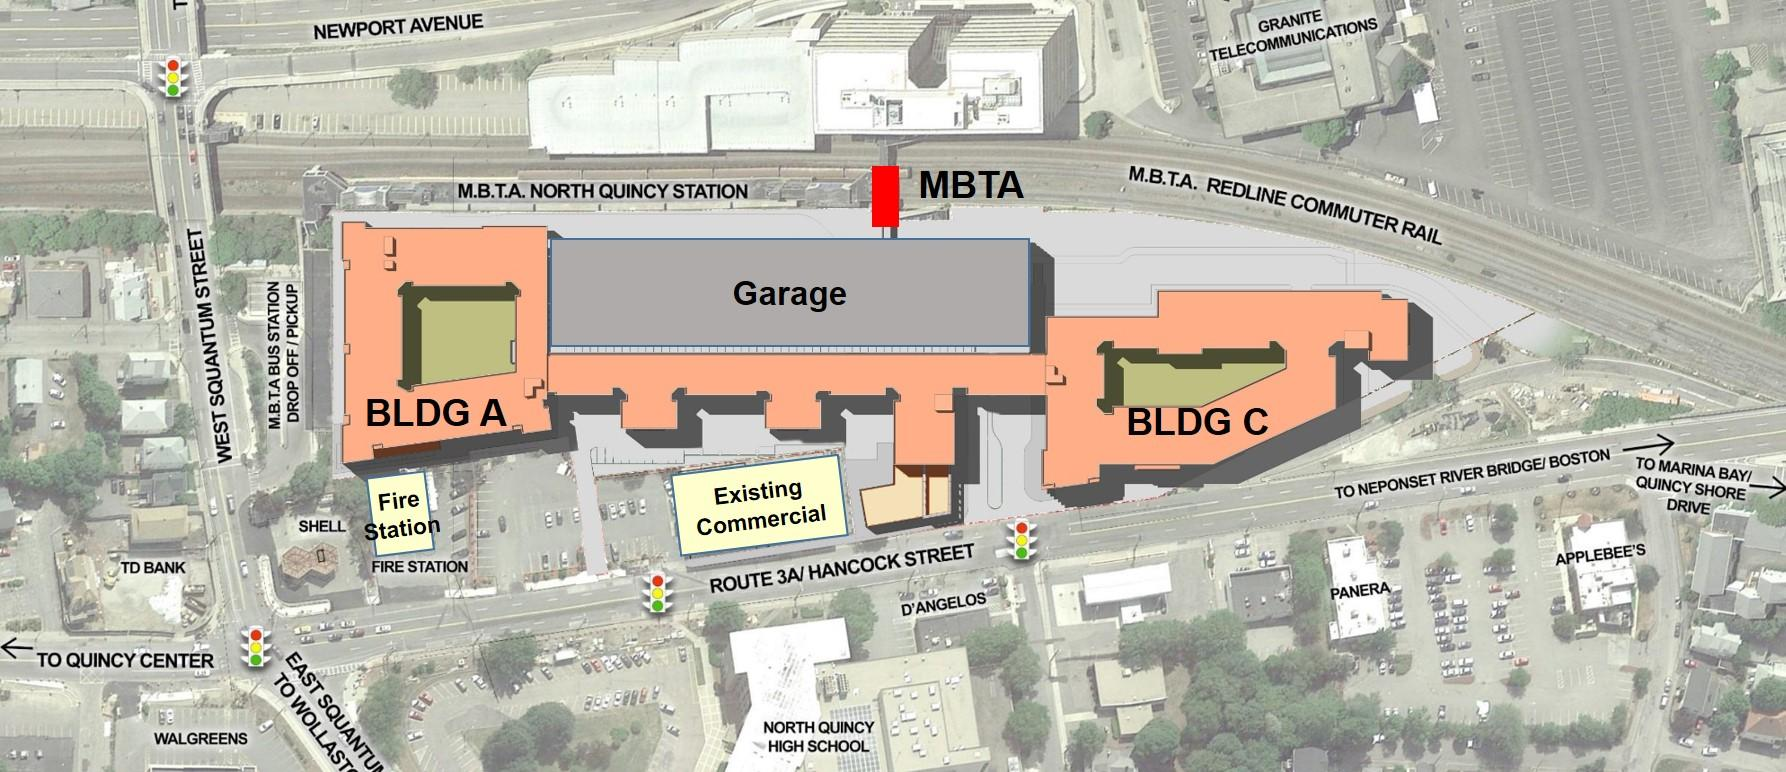 North Quincy construction site map for new garage and buildings